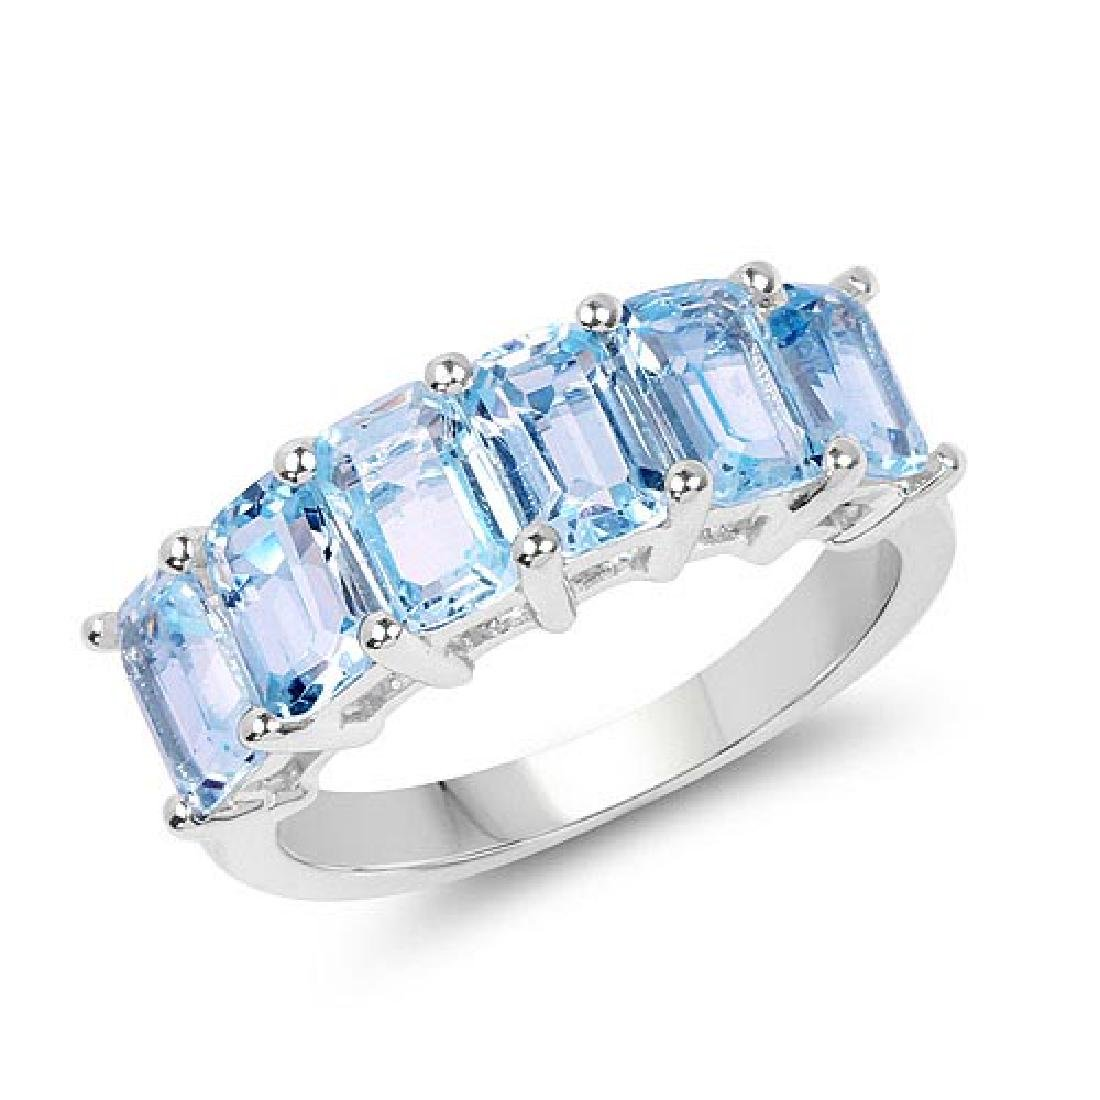 4.08 Carat Genuine Blue Topaz .925 Sterling Silver Ring